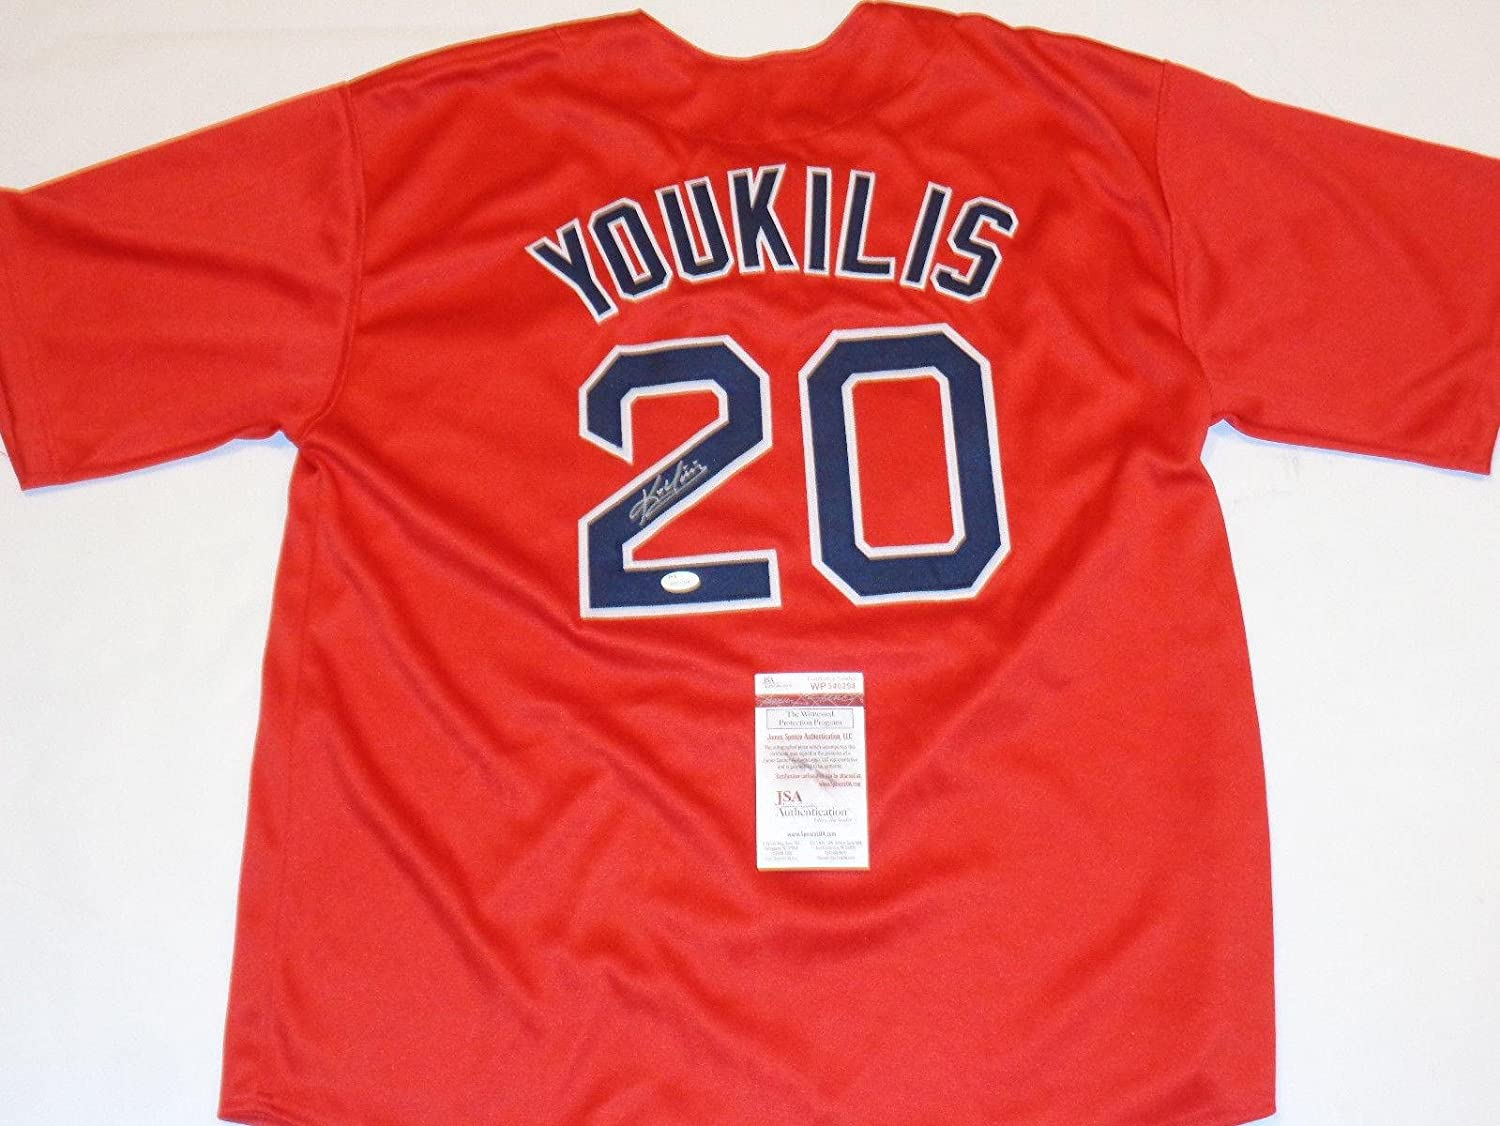 84ebe2308 Amazon.com  Kevin Youkilis Autographed Jersey - witness - JSA Certified -  Autographed MLB Jerseys  Sports Collectibles